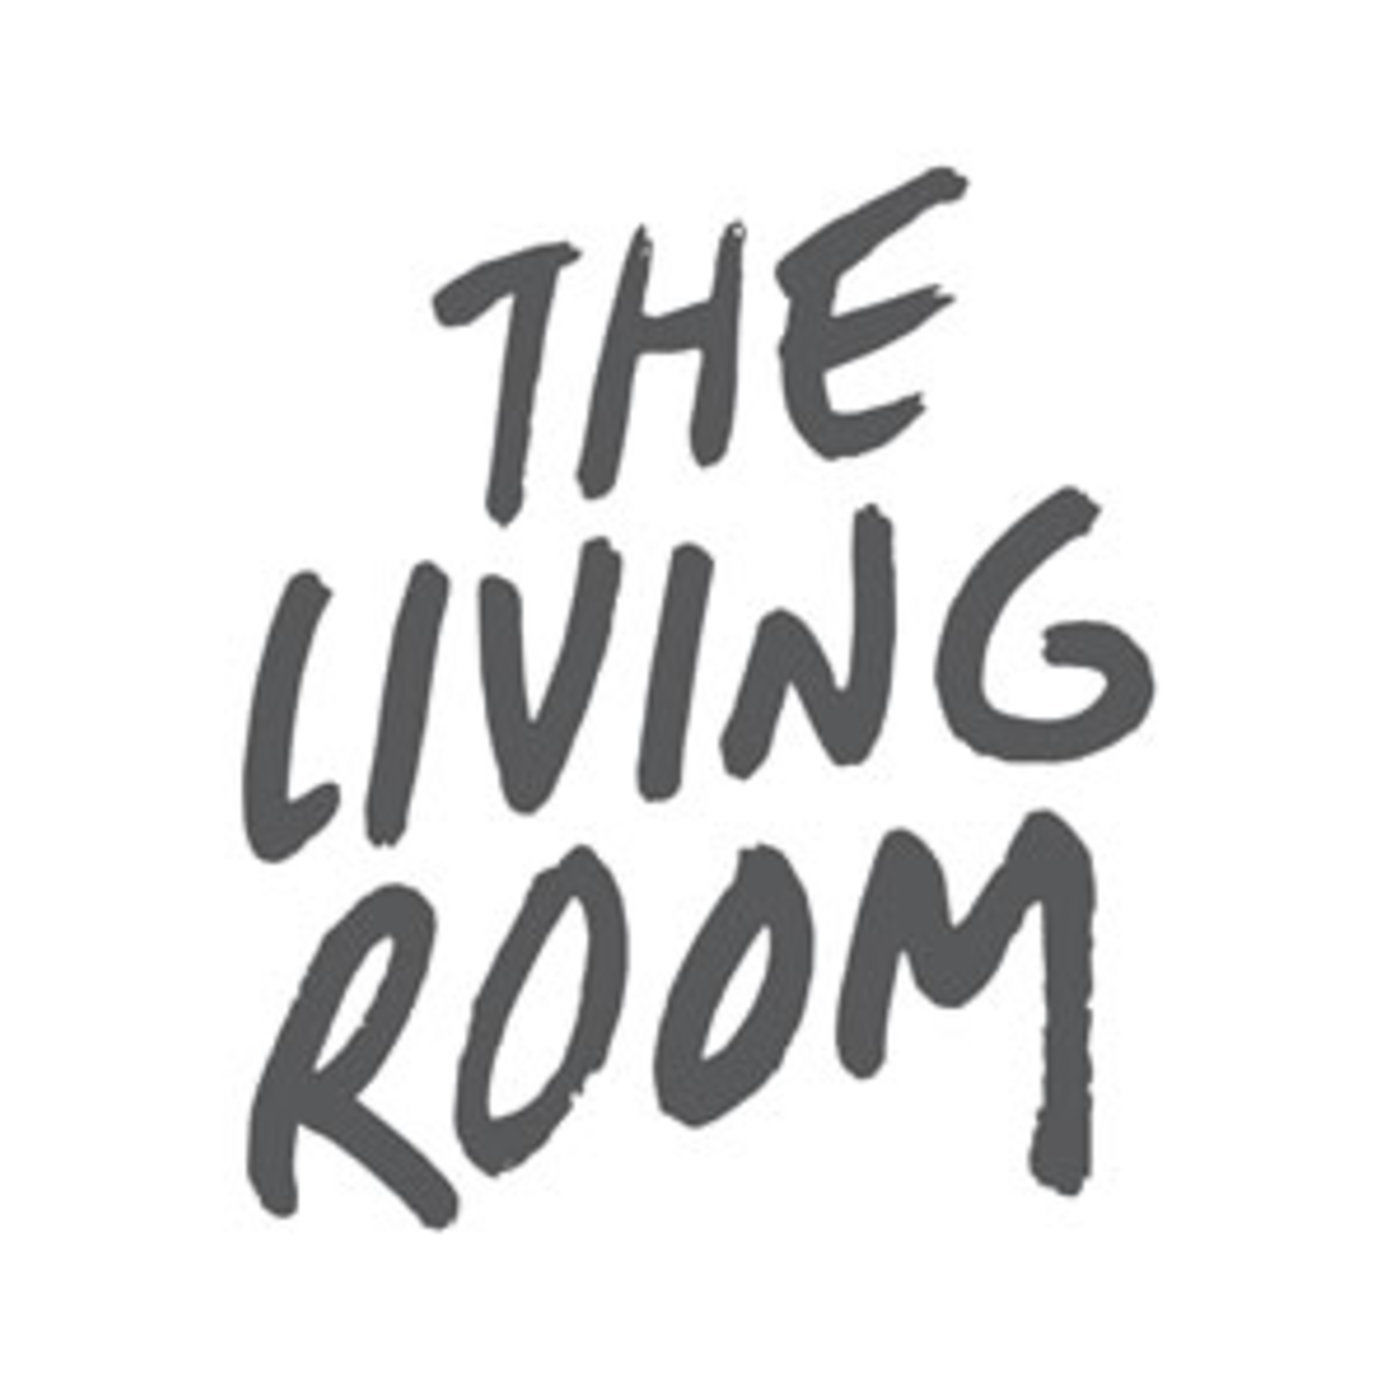 Marvelous The Living Room Buckhead Church College Ministry On Apple Download Free Architecture Designs Lectubocepmadebymaigaardcom